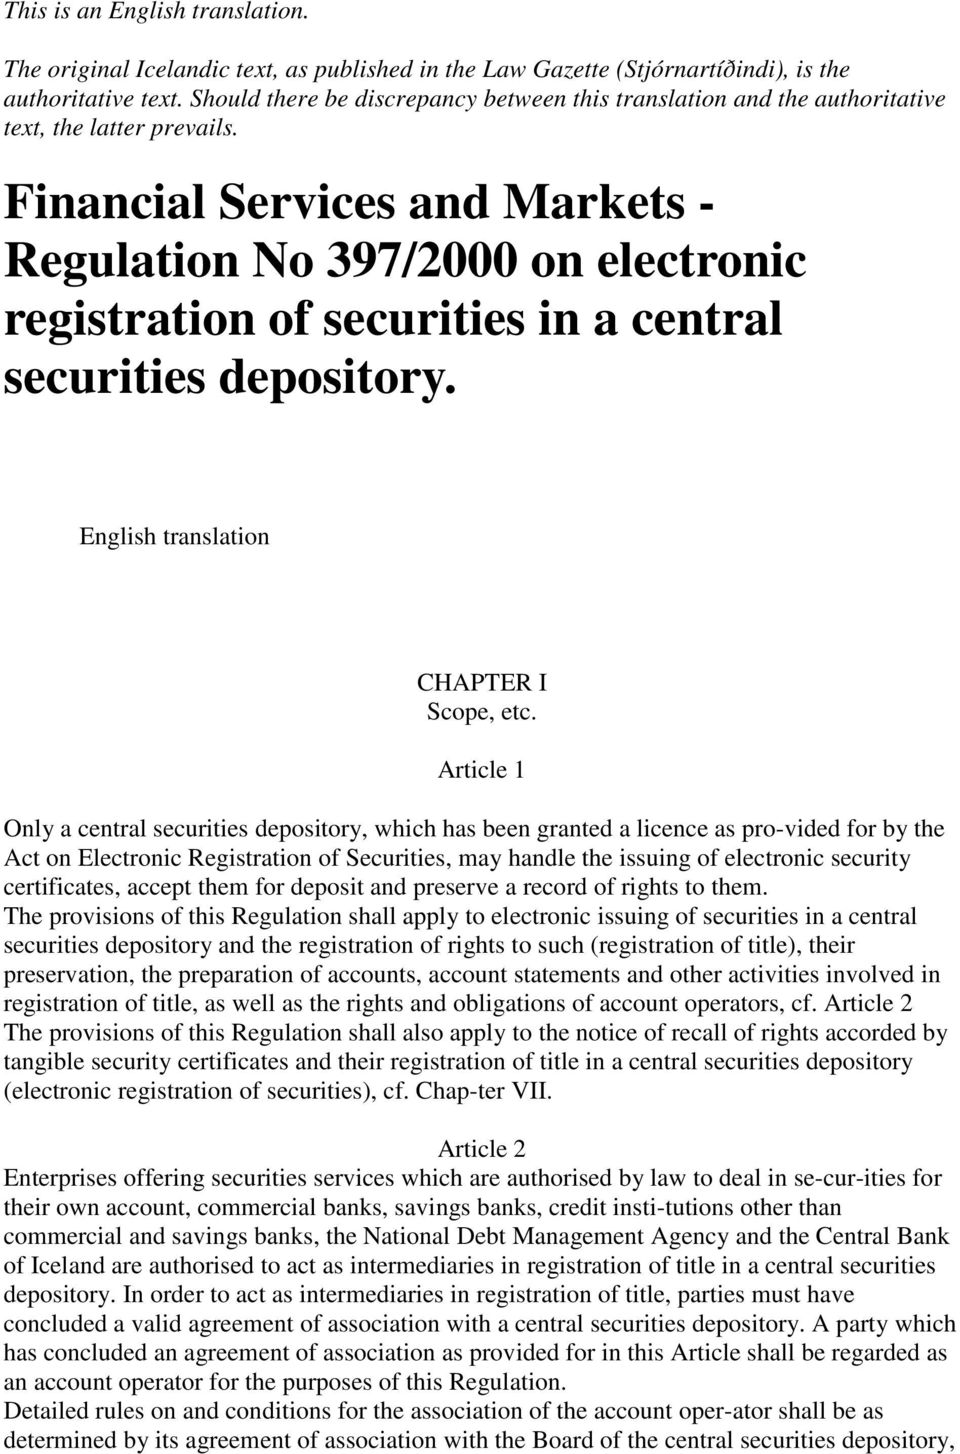 Financial Services and Markets - Regulation No 397/2000 on electronic registration of securities in a central securities depository. English translation CHAPTER I Scope, etc.